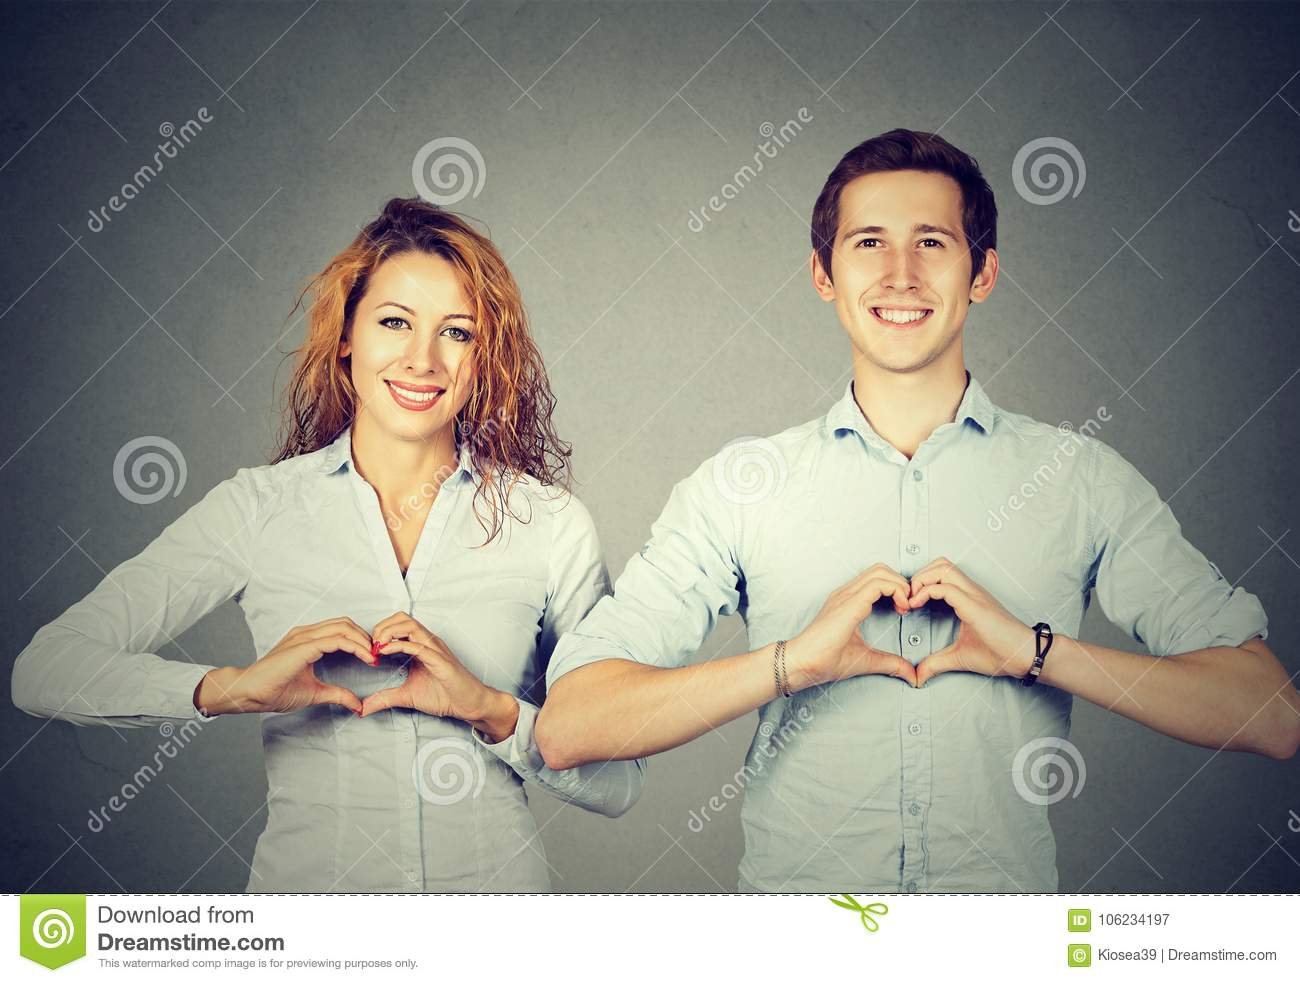 Cheerful people showing hearts with hands